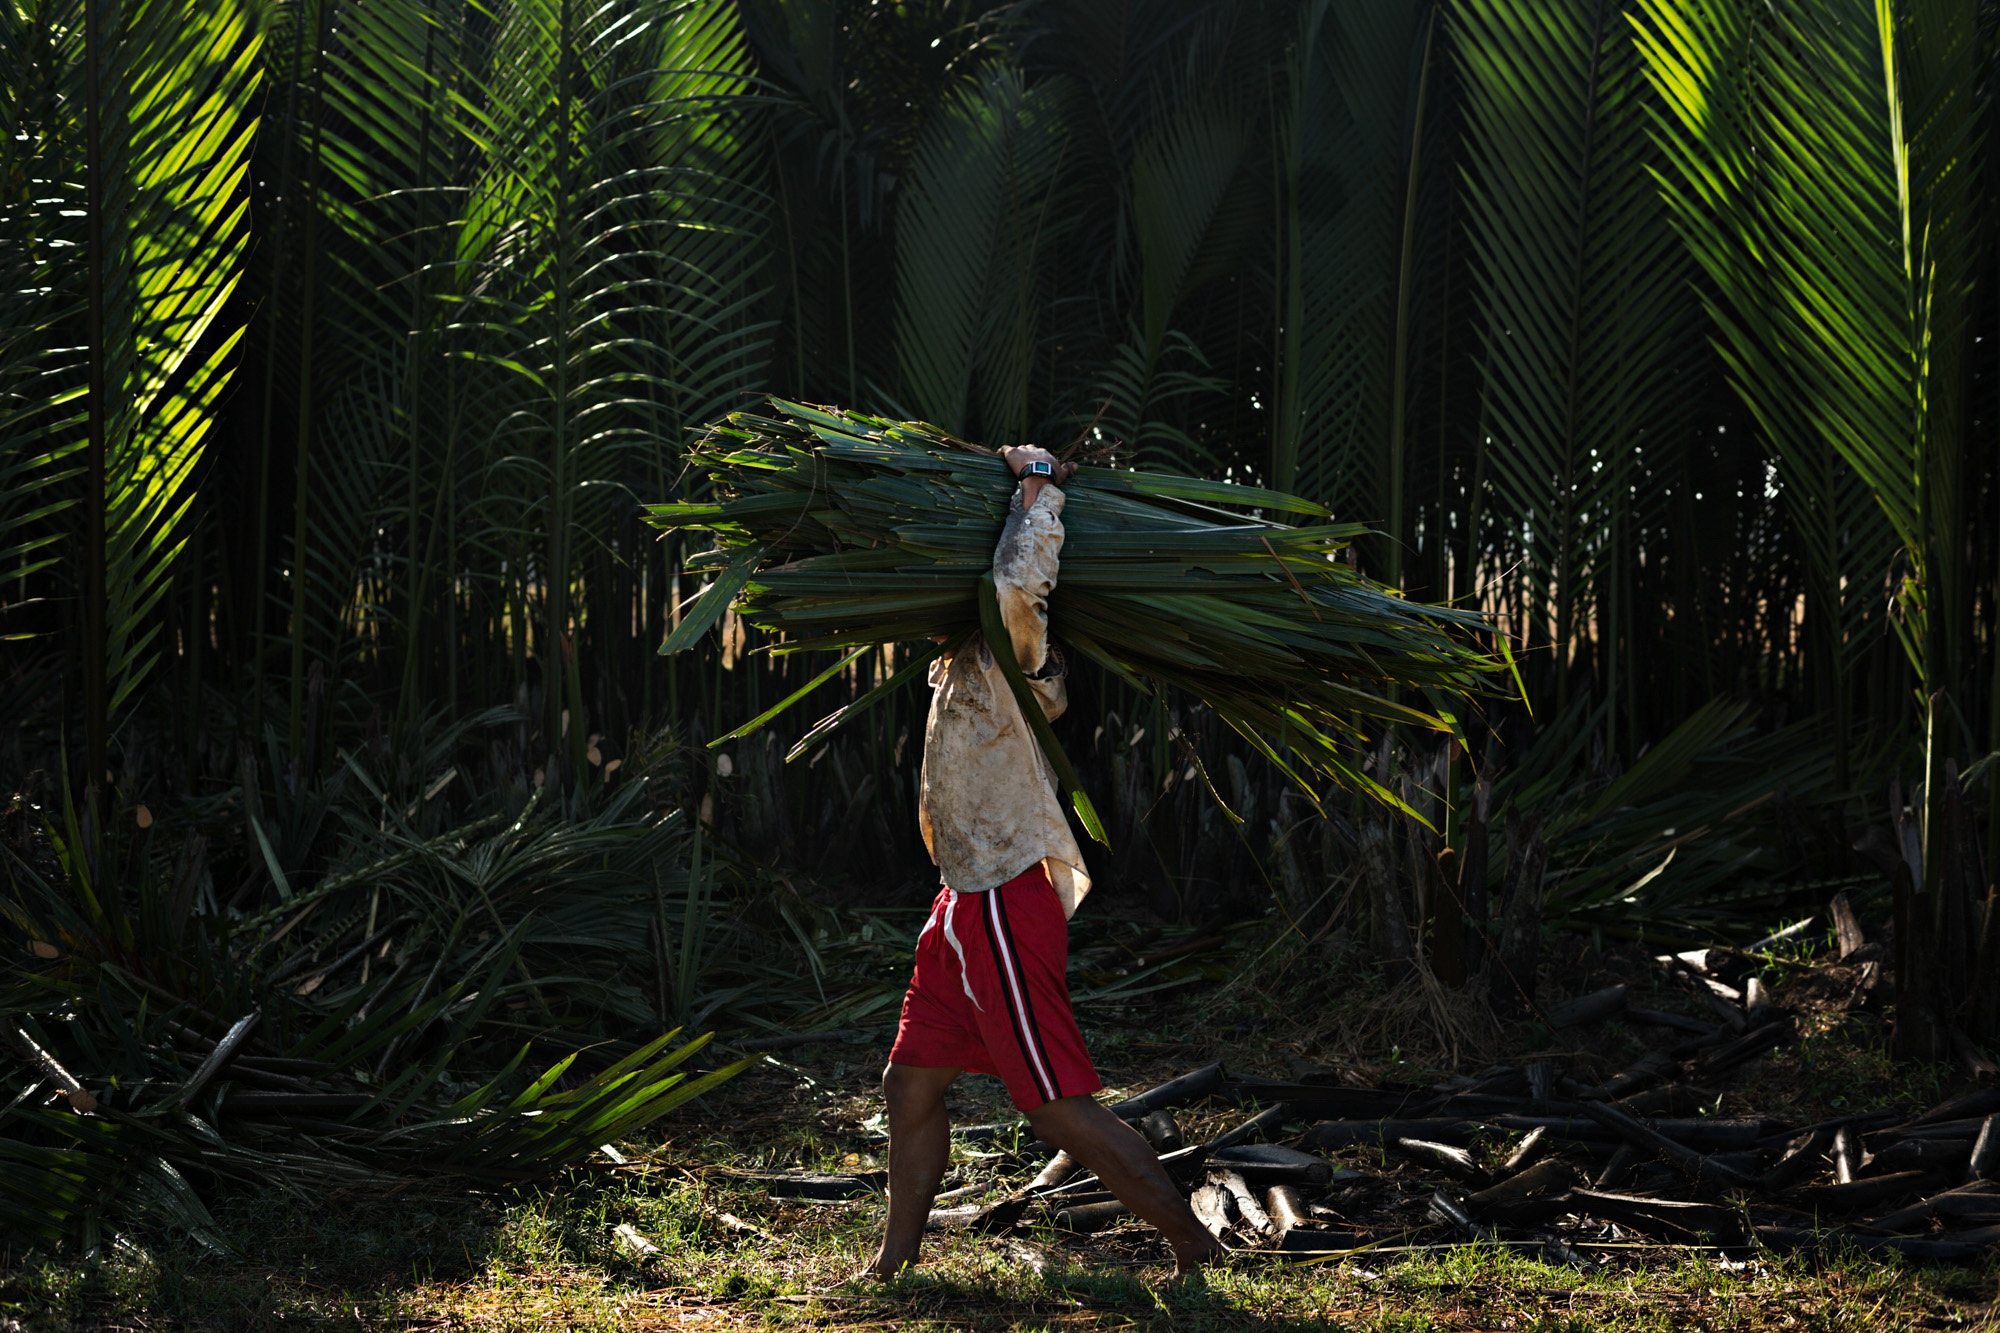 A farmer caries a bundle of palm fronds, to be used as roofing, back to his hut in Pathein.